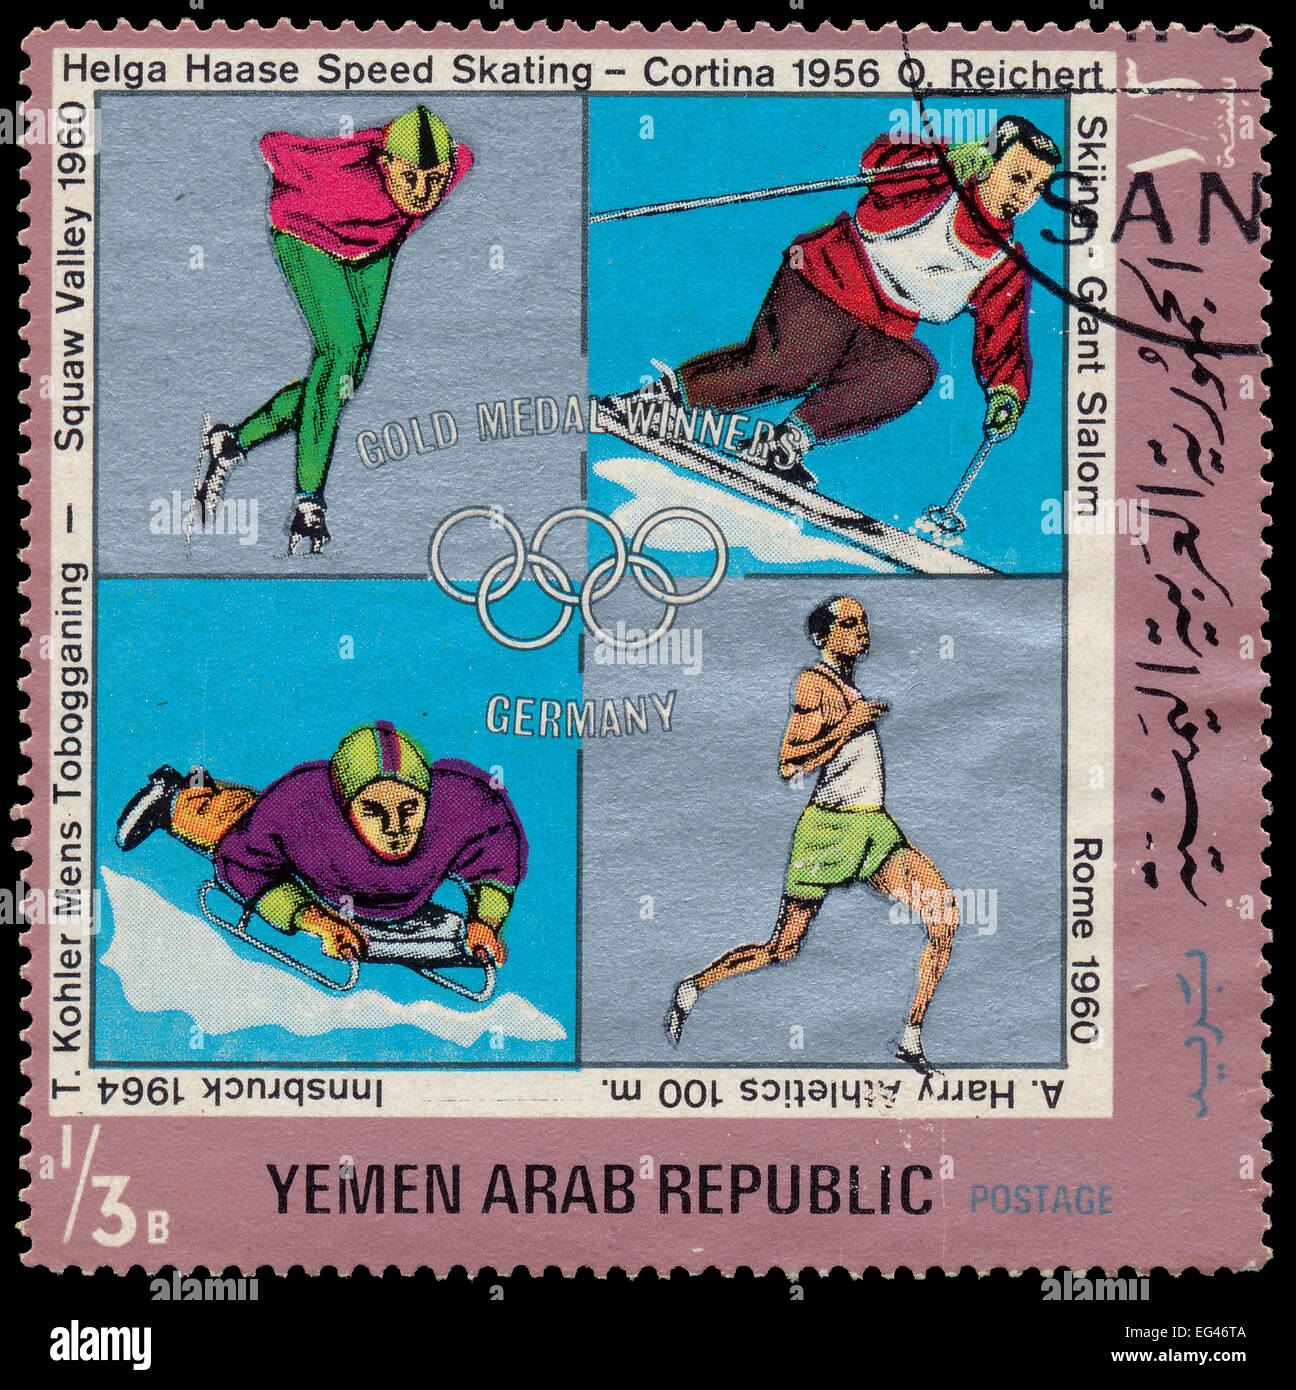 Yemen Olympic Winter Games 1972 Sapporo Top Cancelled Block Y.a.r